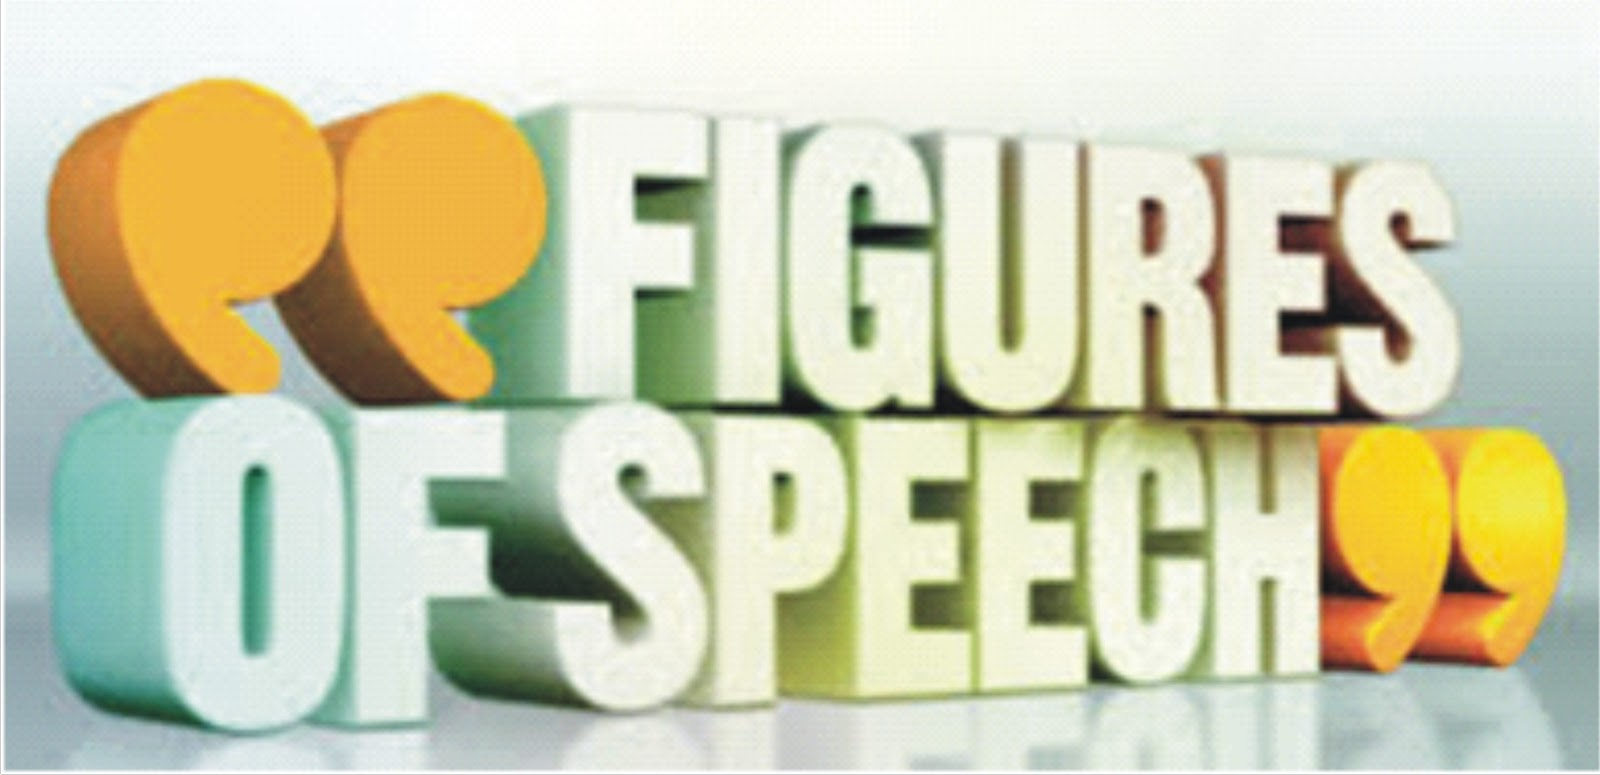 The Most 20 Used Figure Of Speech Gaacspot